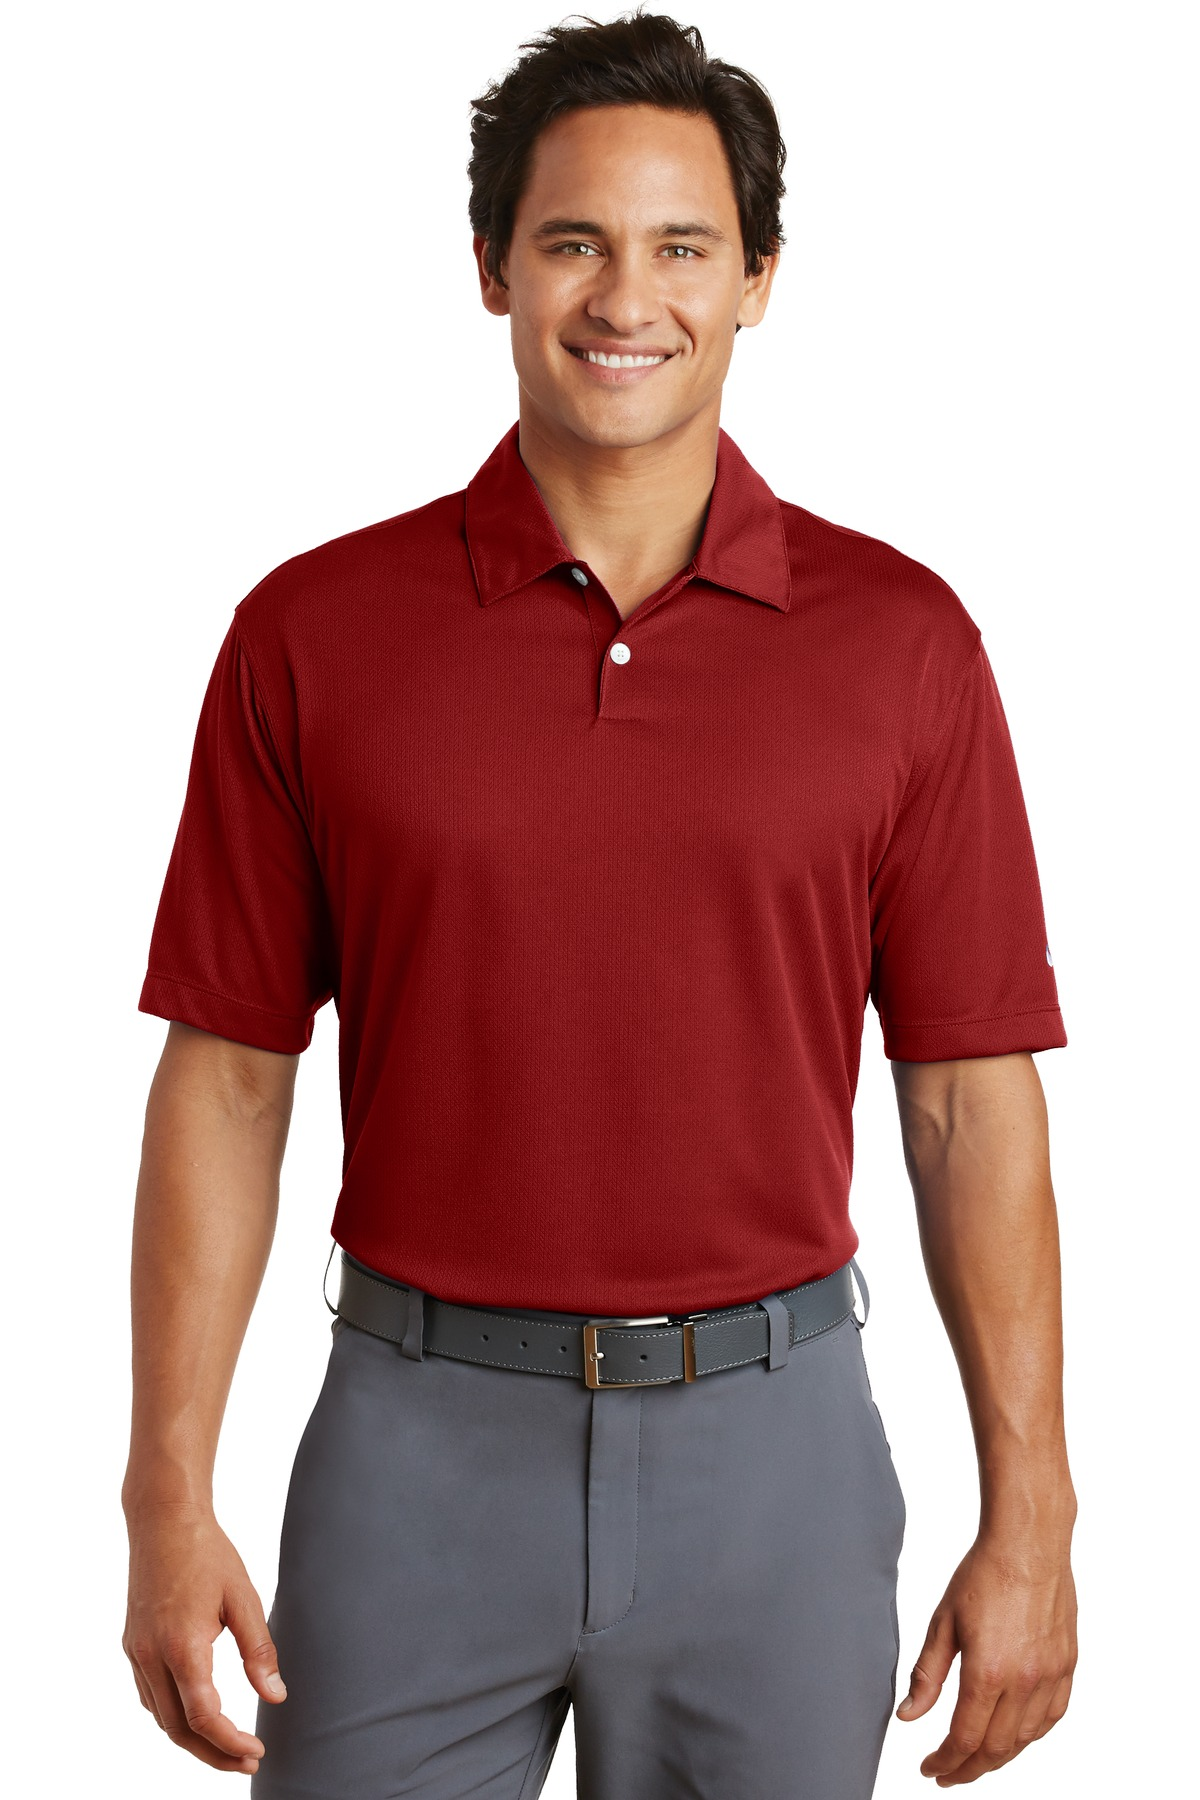 Nike Dri-FIT Pebble Texture Polo. 373749 - Varsity Red